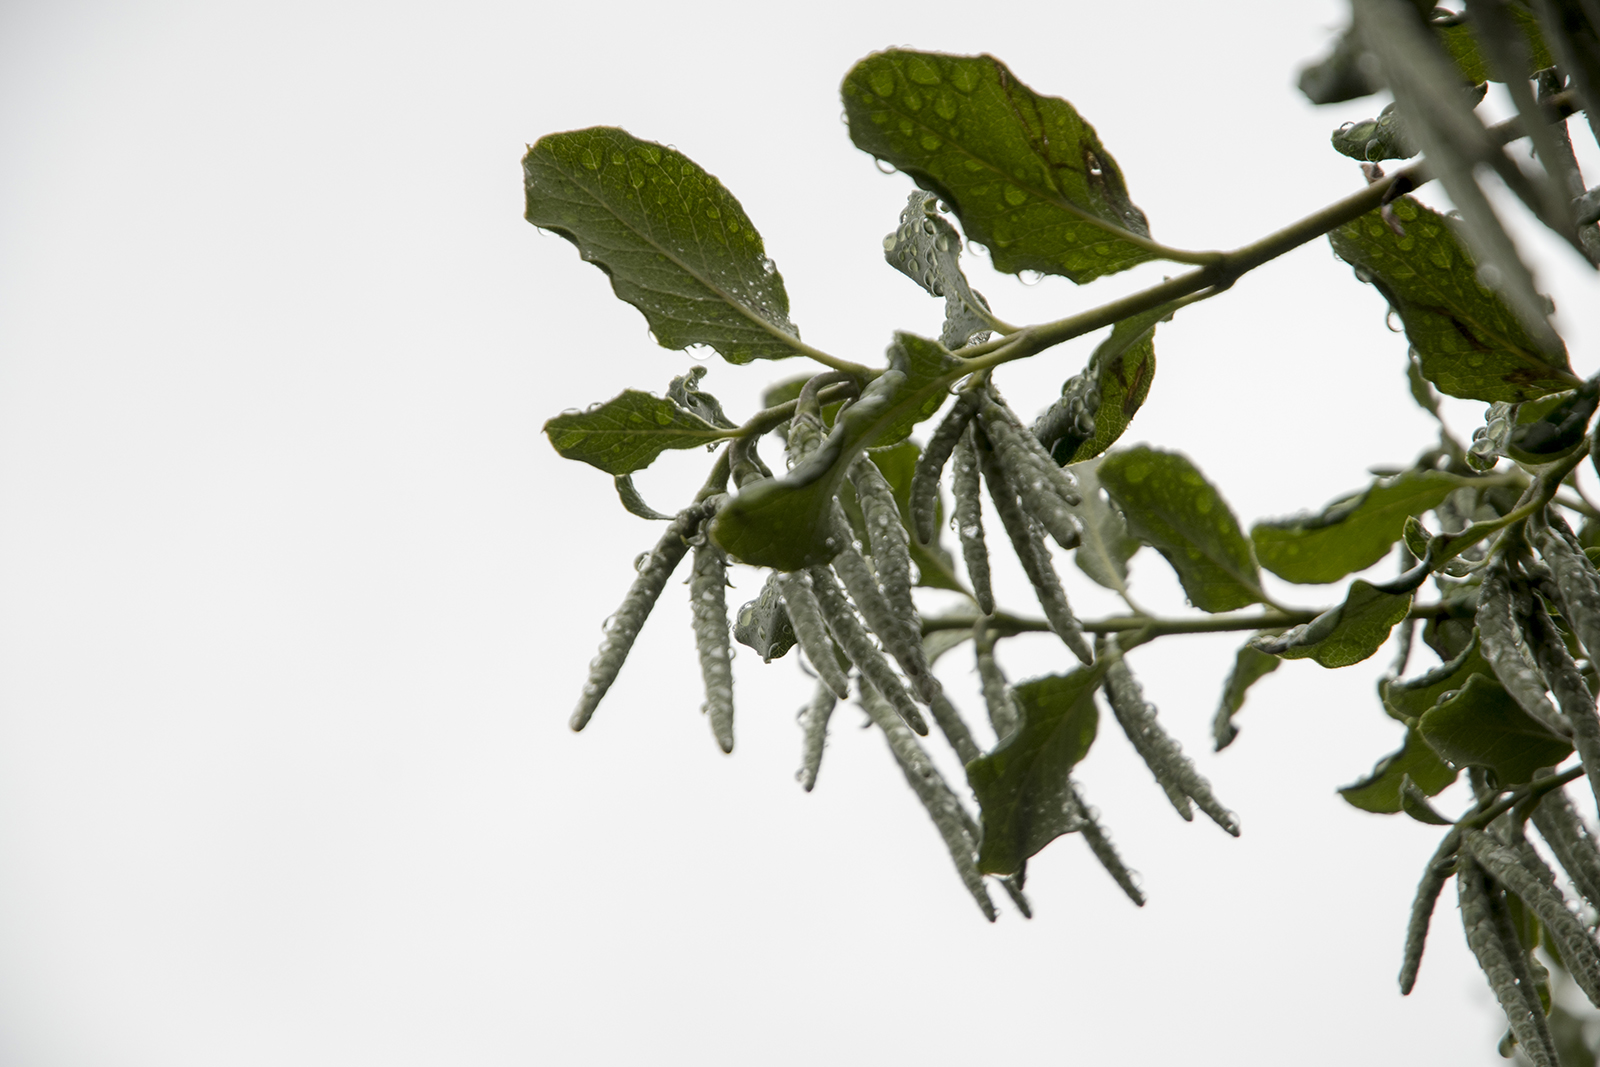 20161212_Kensington-and-Chelsea_Brompton-Cenentary_Flora_Winter_Dripping-bush